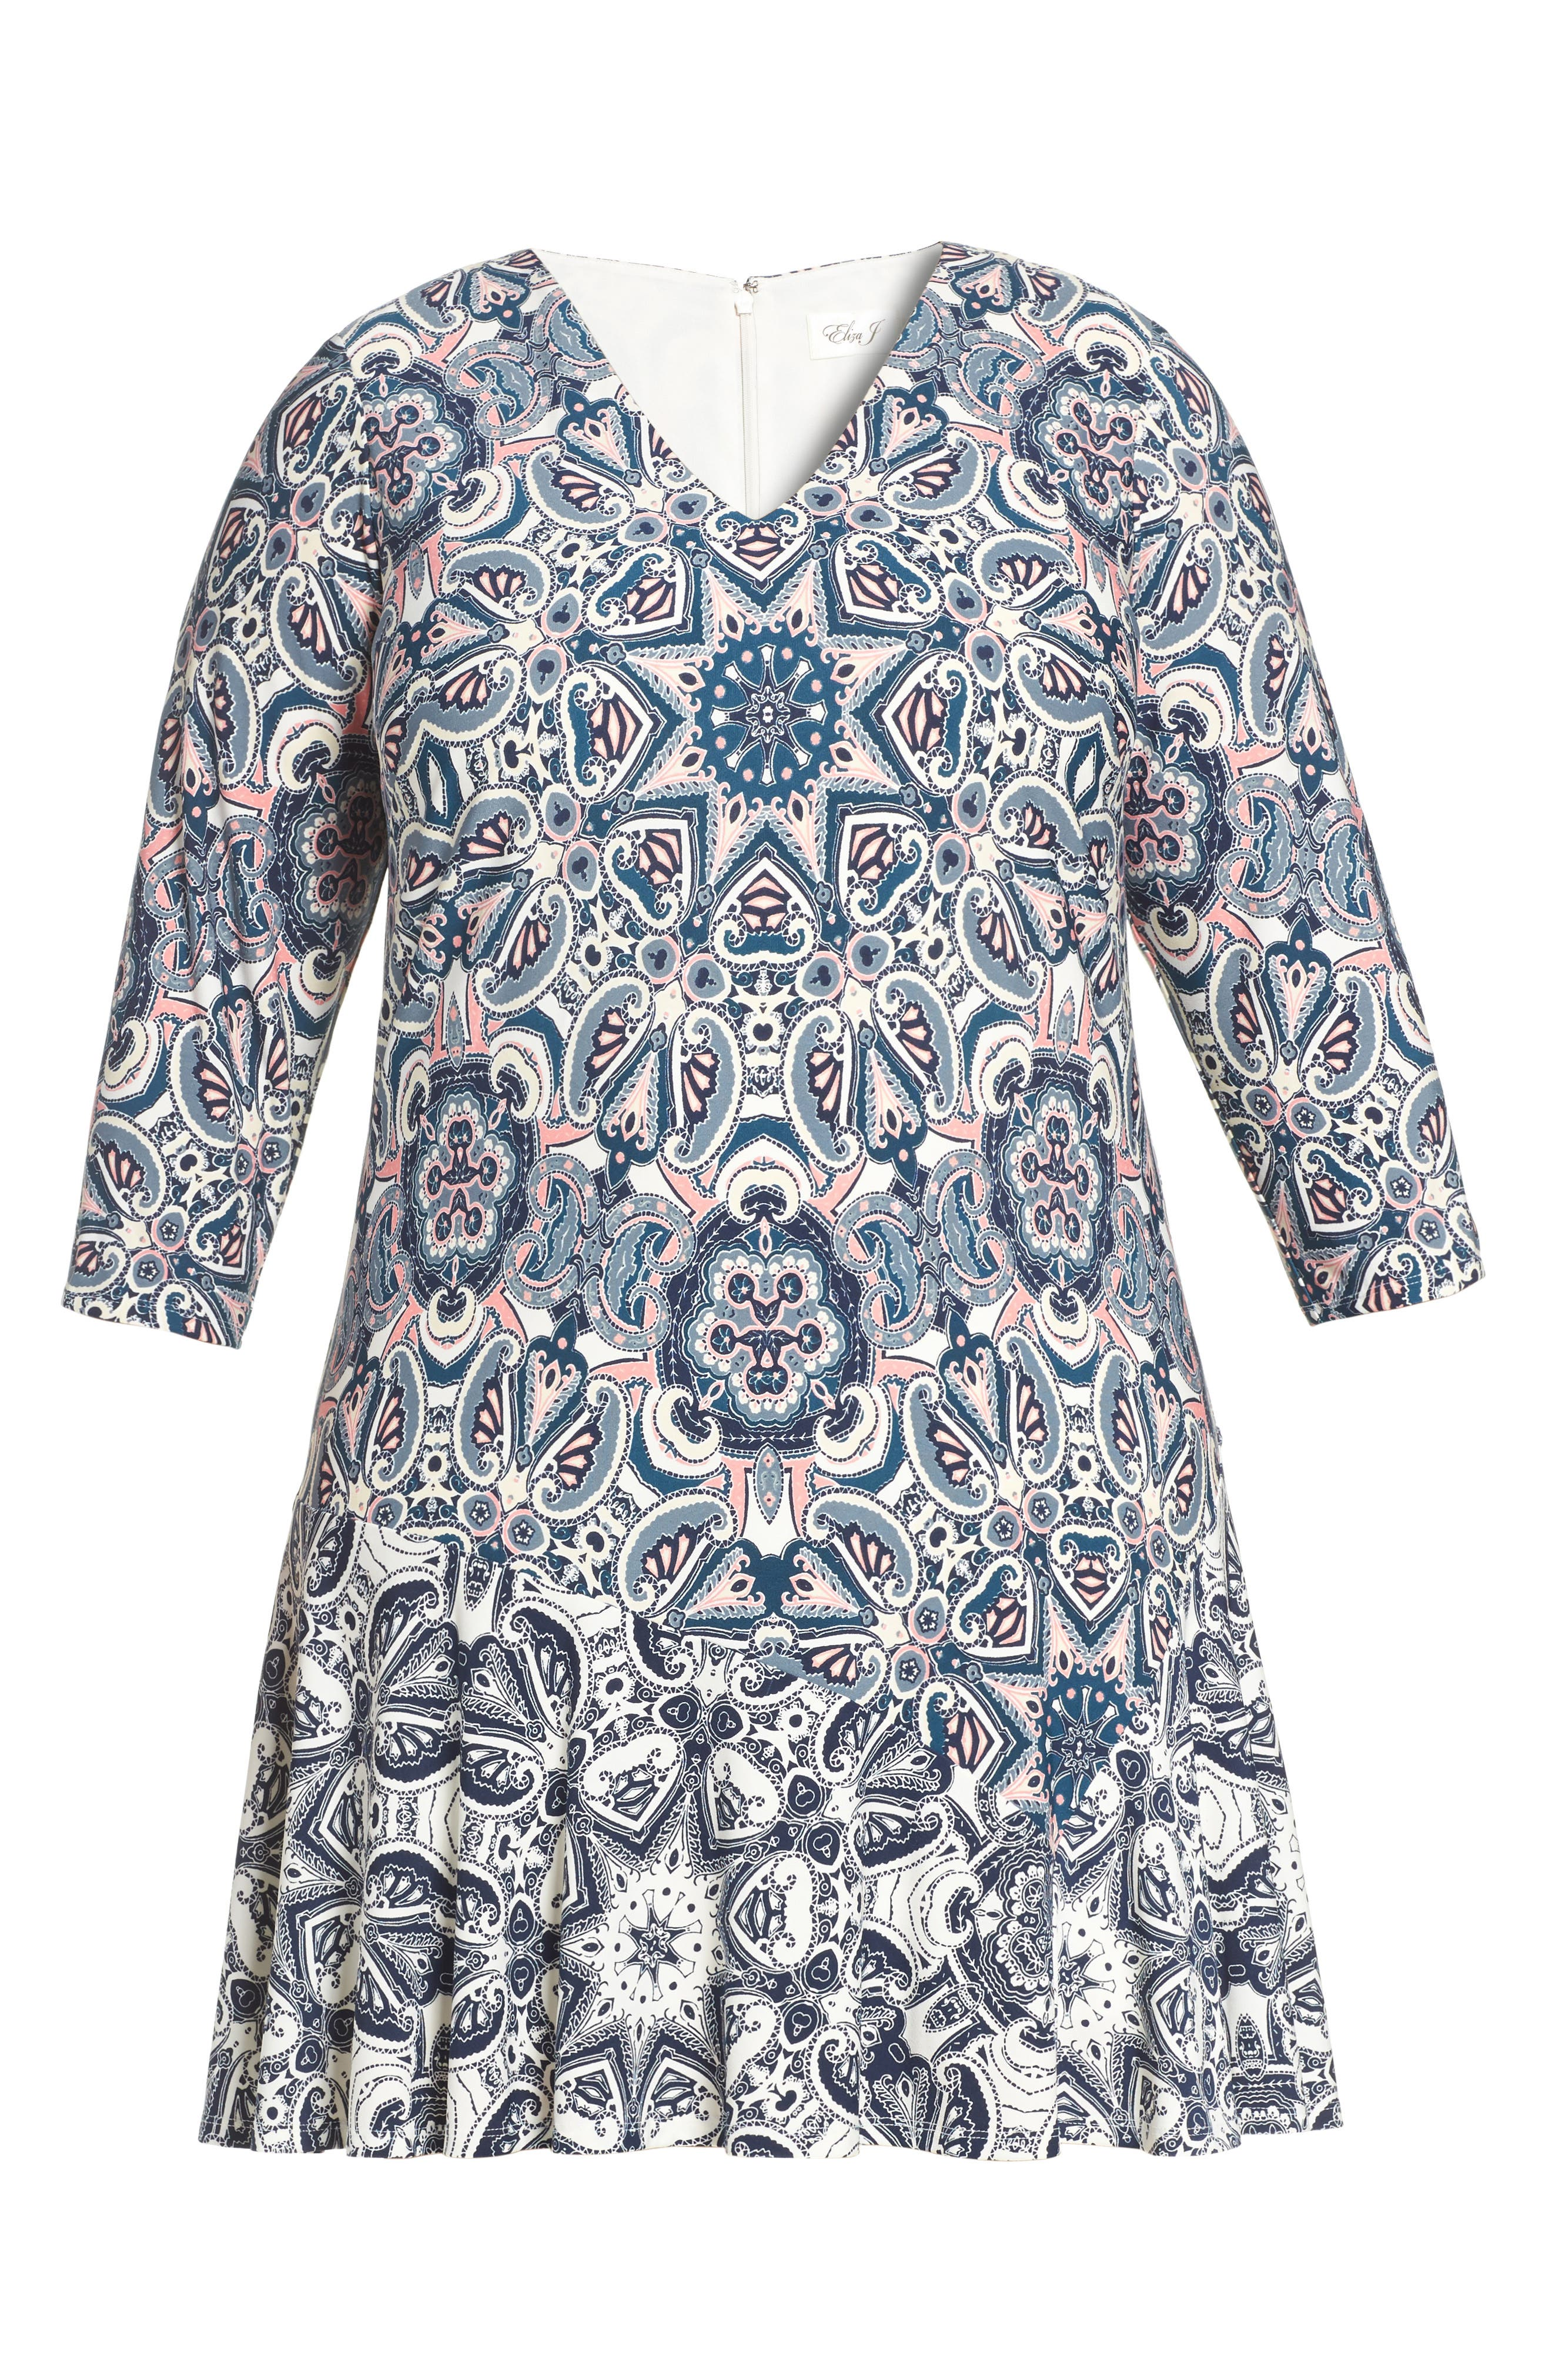 Mixed Paisley A-Line Dress,                             Alternate thumbnail 8, color,                             404